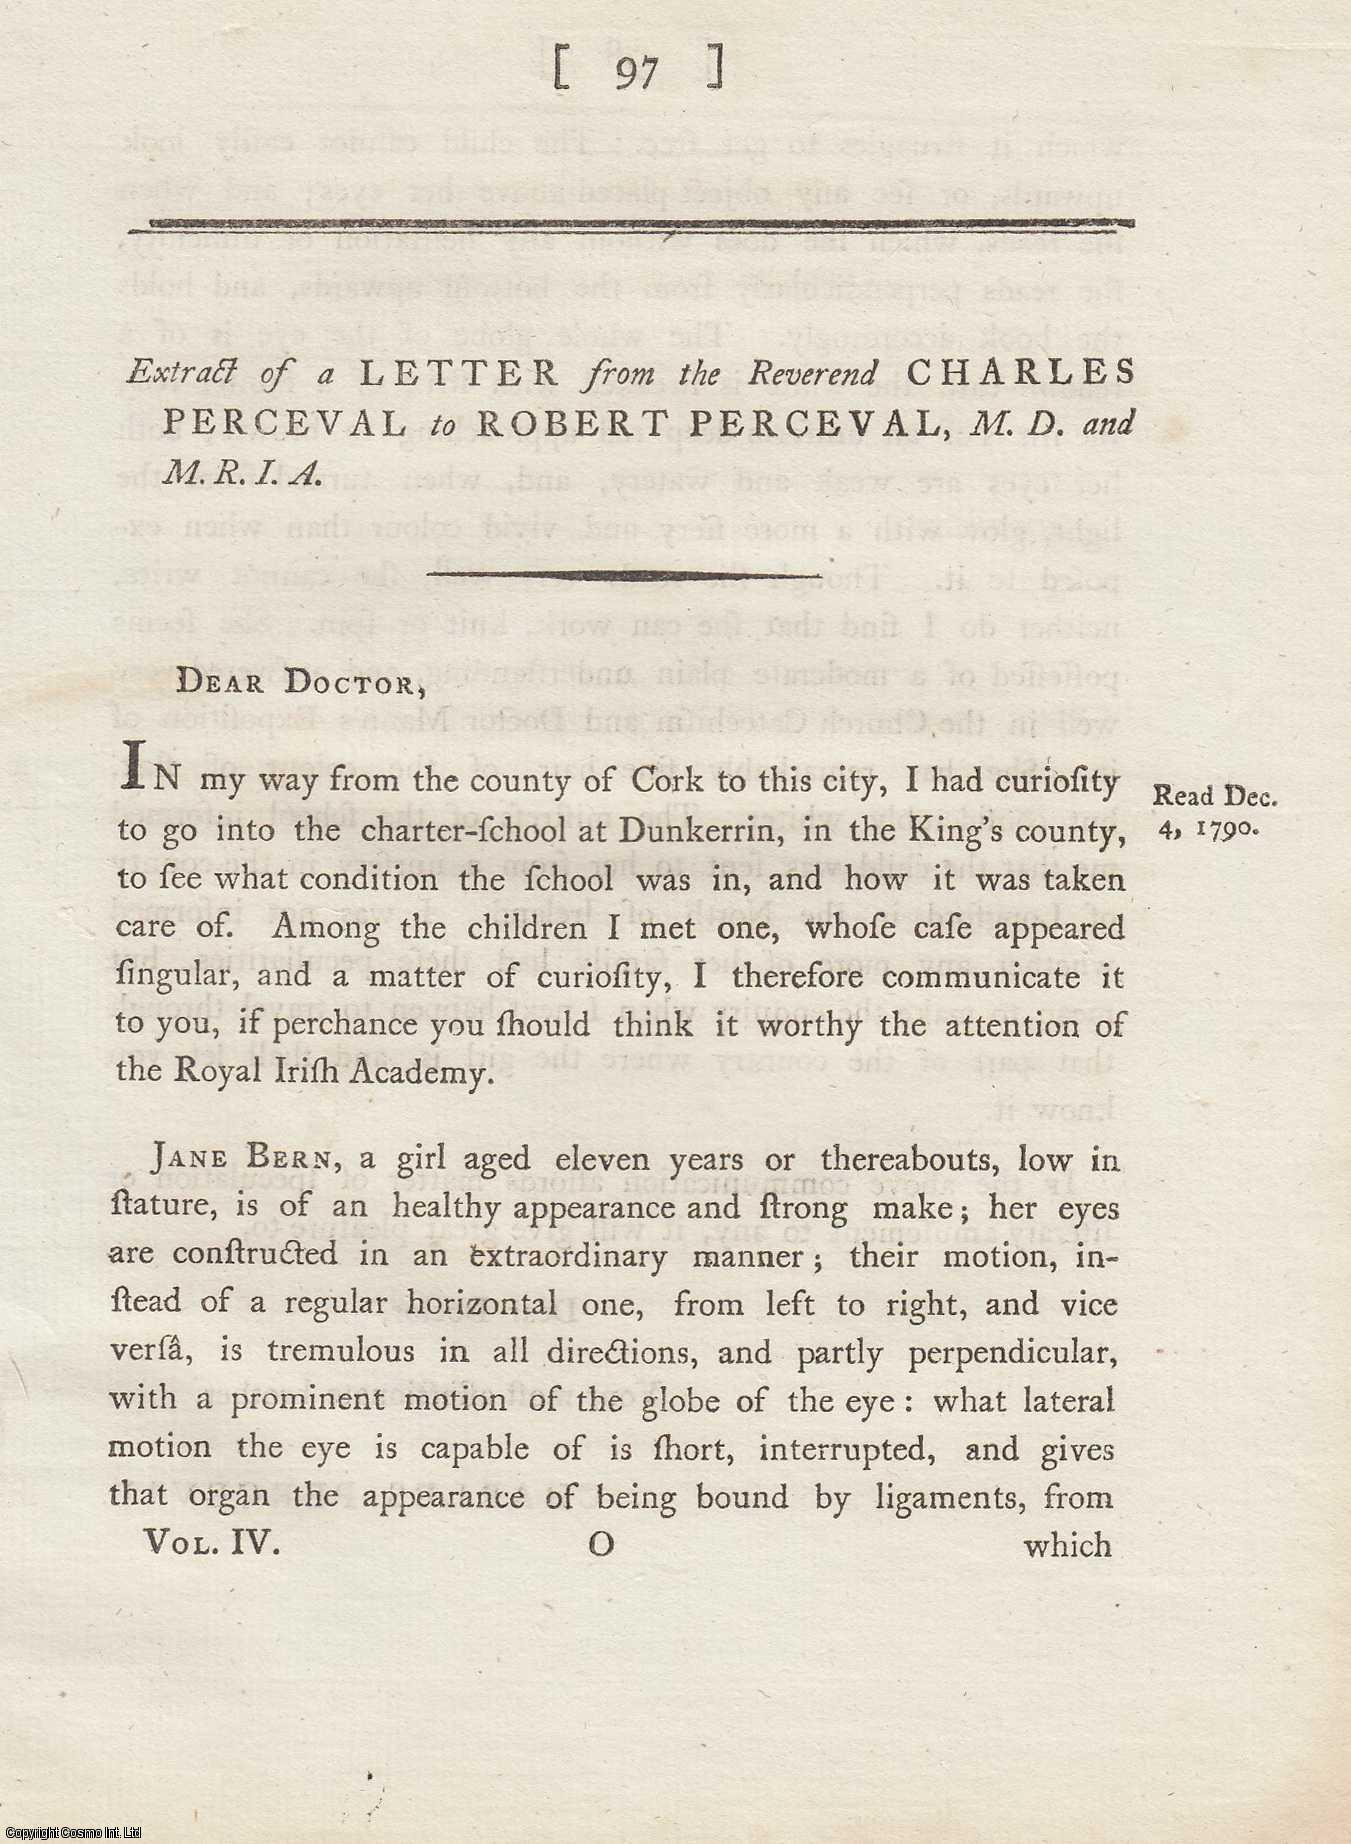 Extract of a Letter to Robert Perceval [regarding a medical condition of the eye].  From Transactions of the Royal Irish Academy., Perceval, Charles.